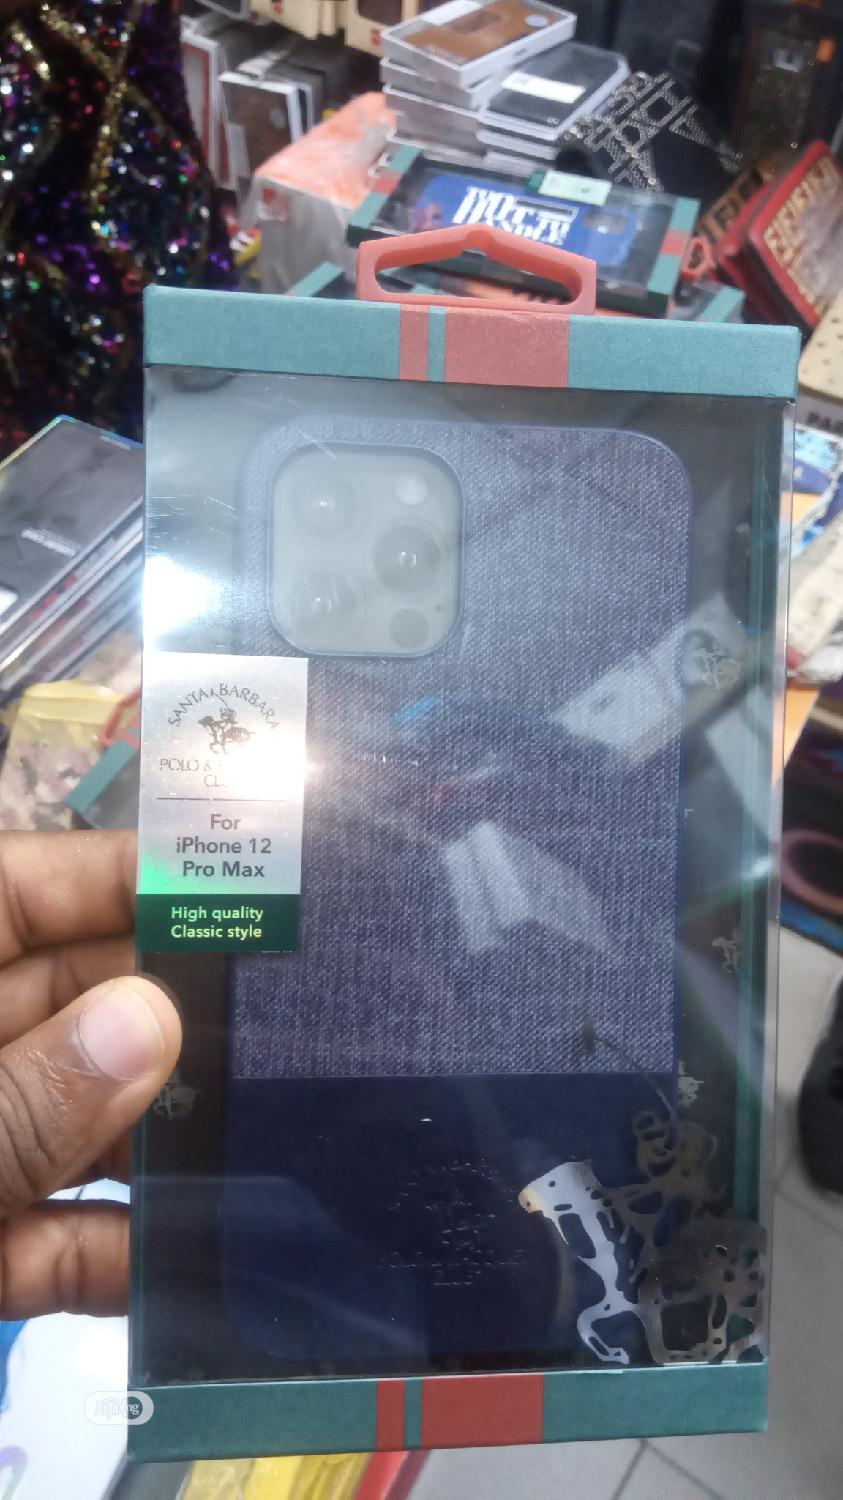 Polo Leather Back Case for iPhone 12 Pro Max | Accessories for Mobile Phones & Tablets for sale in Ikeja, Lagos State, Nigeria